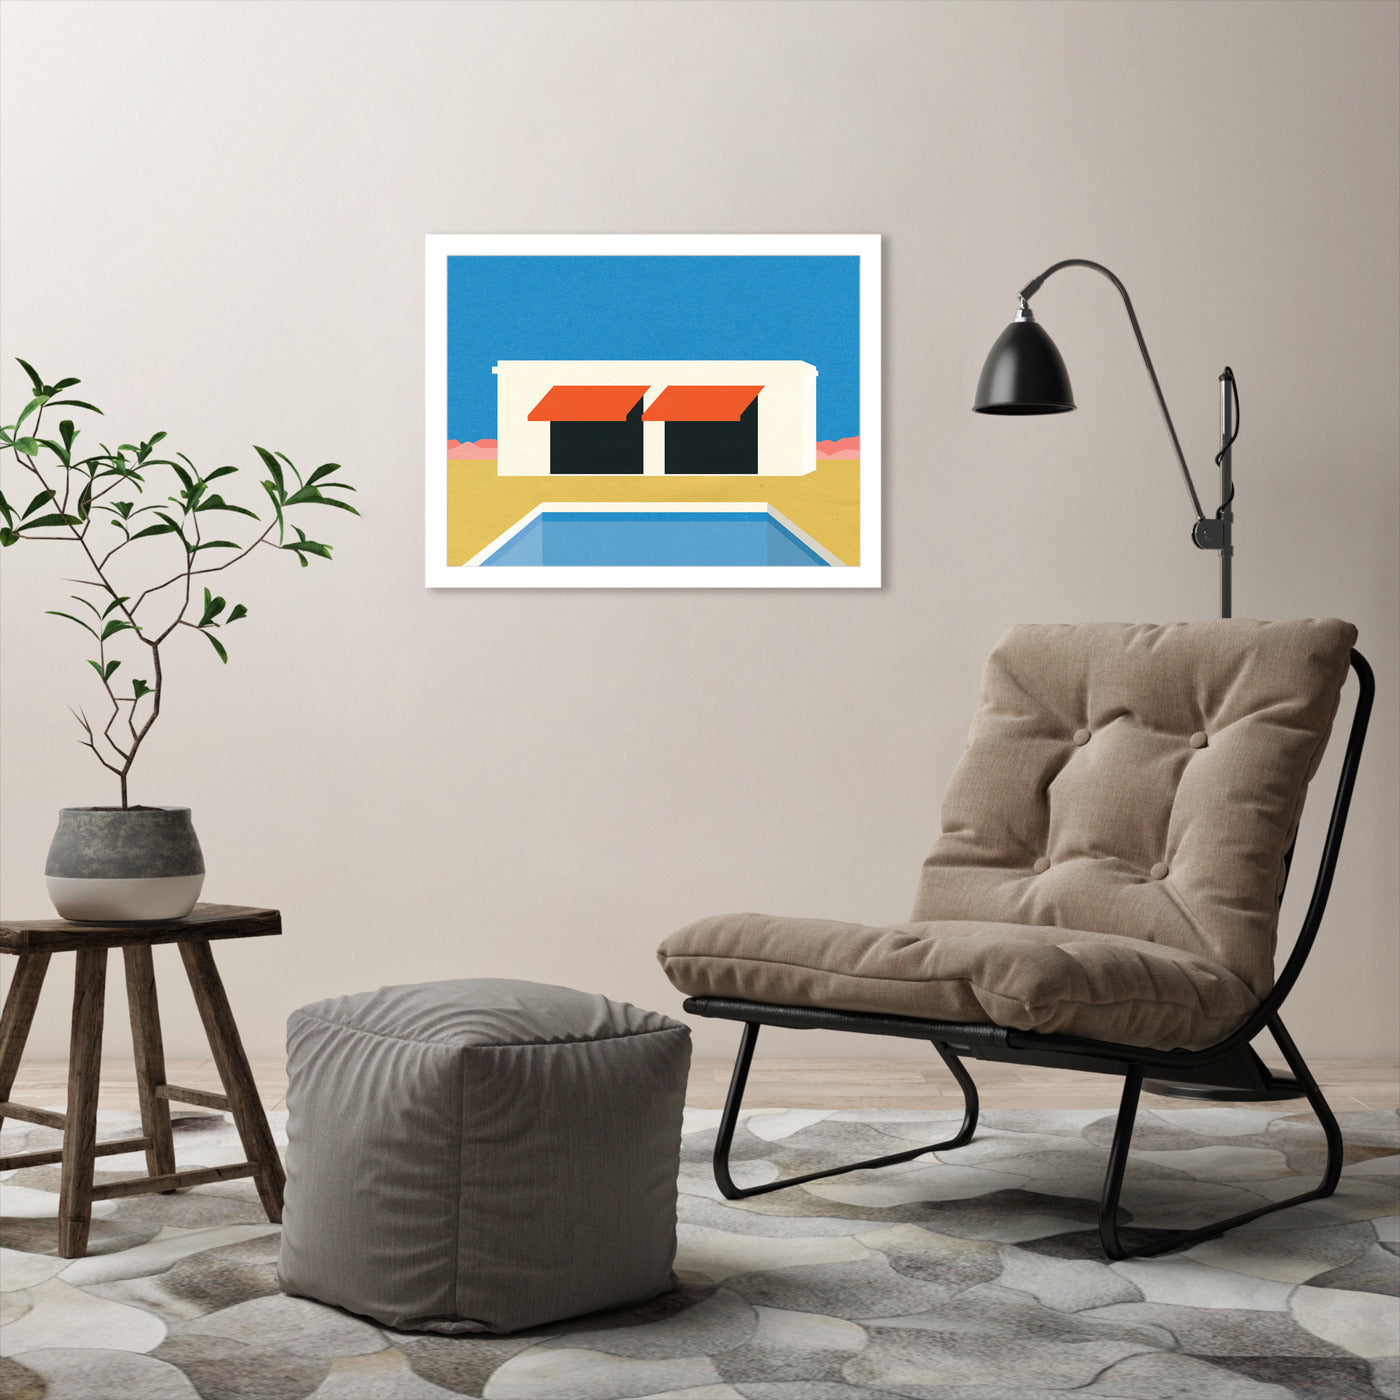 Nevada Pool House by Rosi Feist - White Framed Print - Wall Art - Americanflat